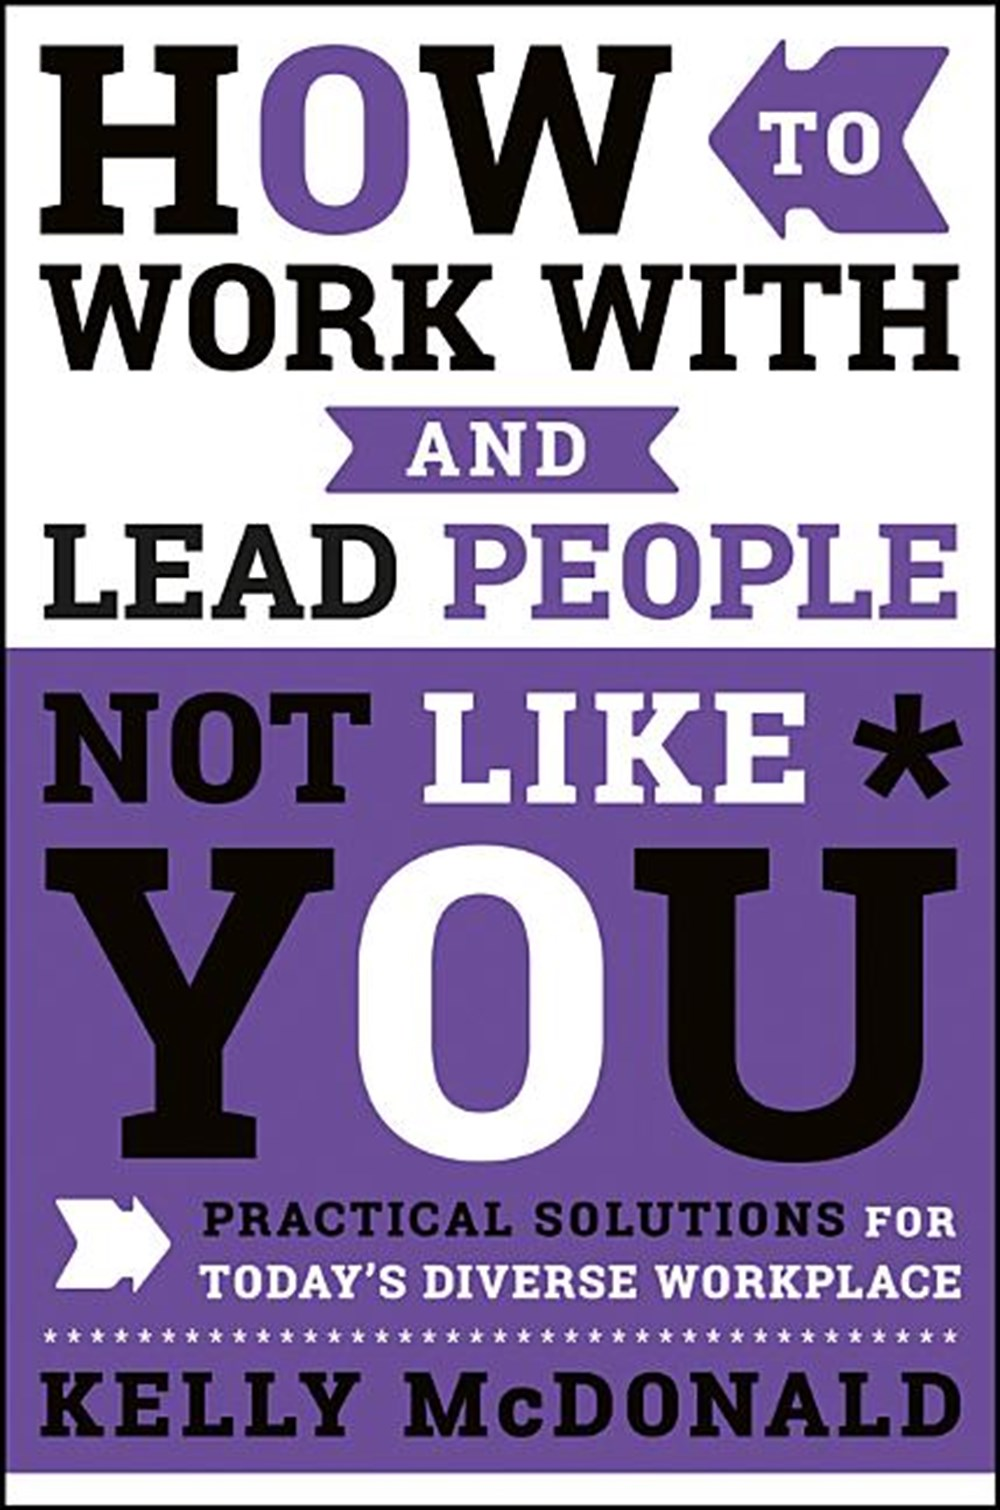 How to Work with and Lead People Not Like You Practical Solutions for Today's Diverse Workplace